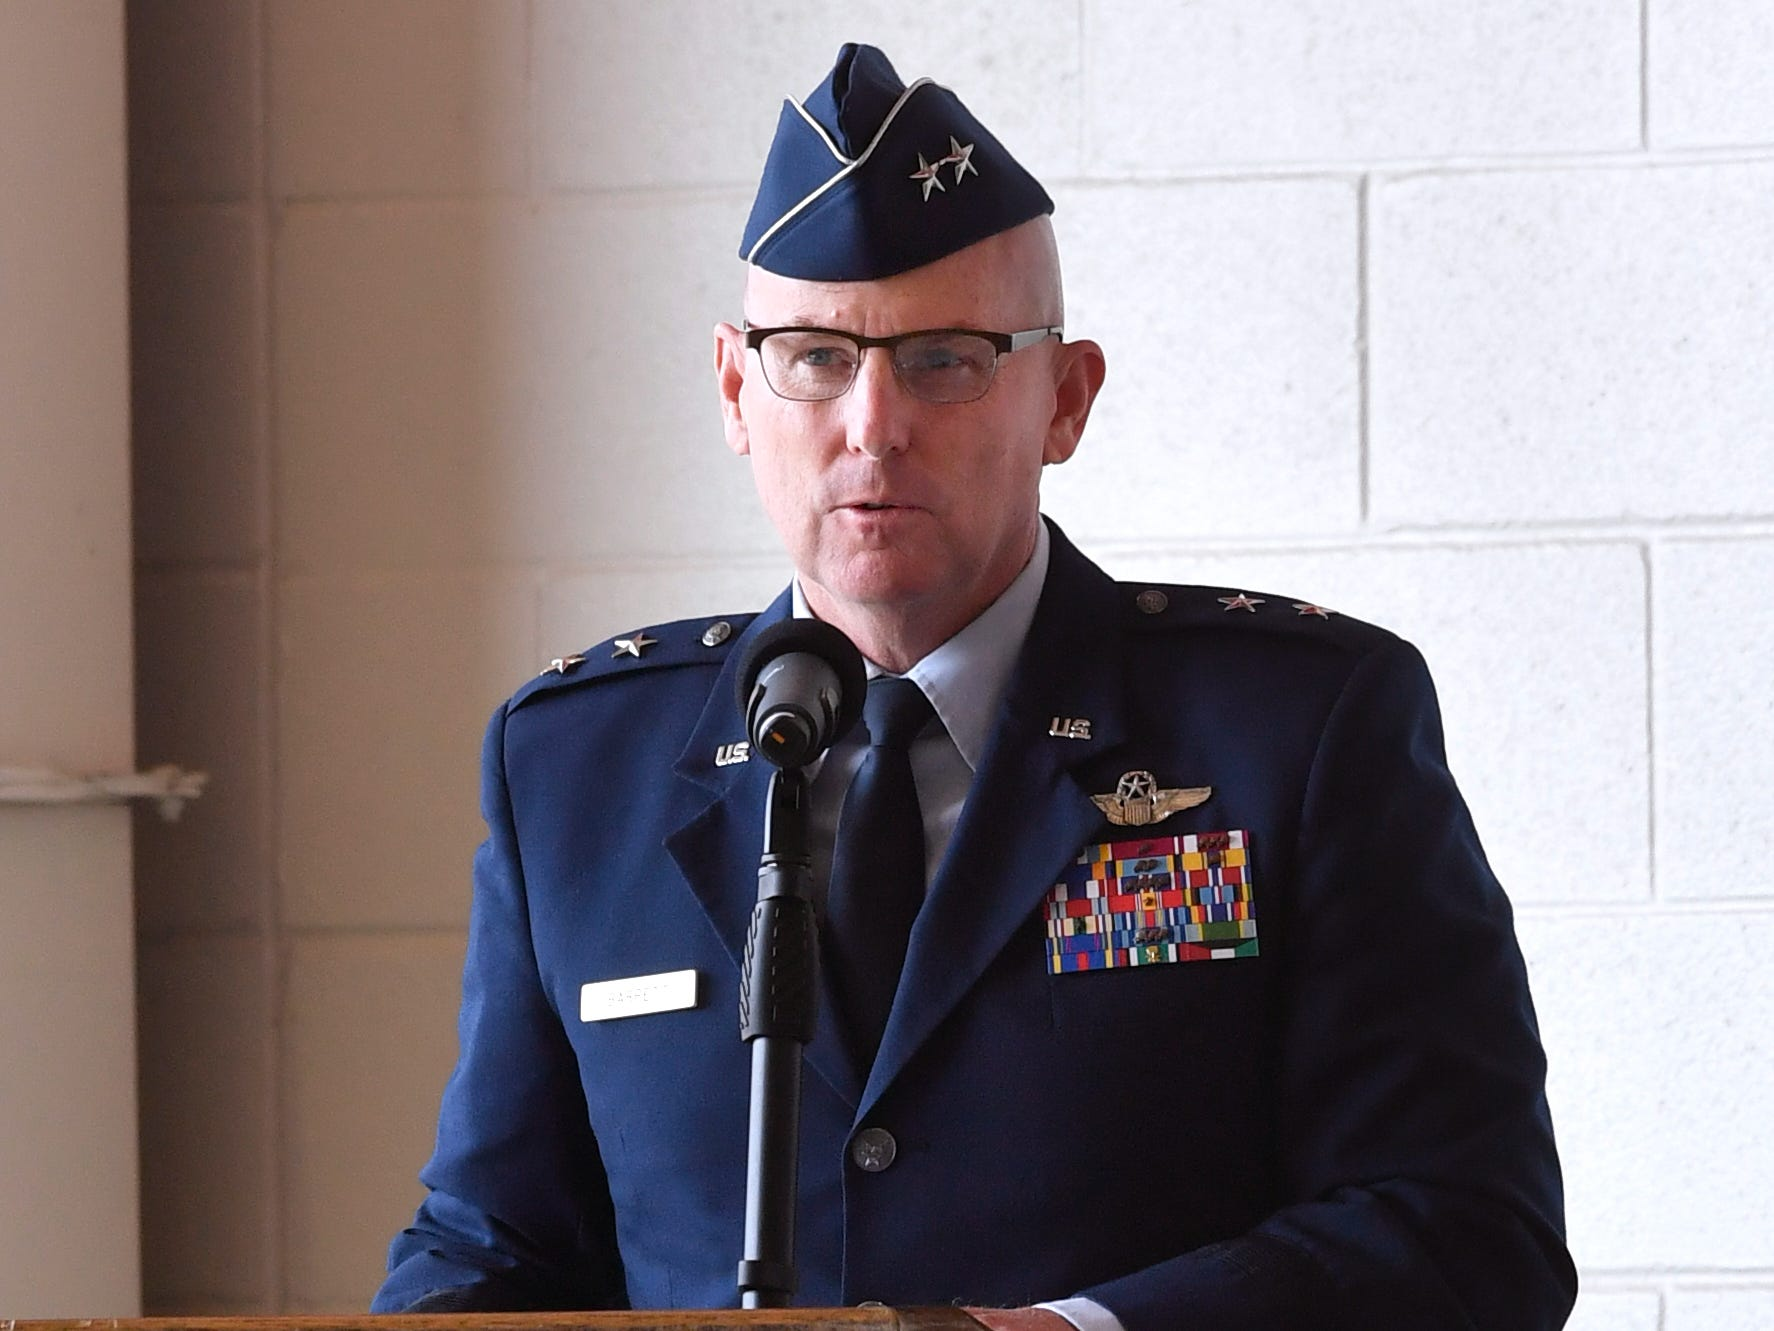 Major Gen. Sam Barrett, Commander of the 18th Air Force, makes his remarks during the 317th Airlift Wing assumption of command Friday August 3, 2018 at Dyess Air Force Base. Col. Jeffrey Menasco was given command of the wing by Barrett during the ceremony.